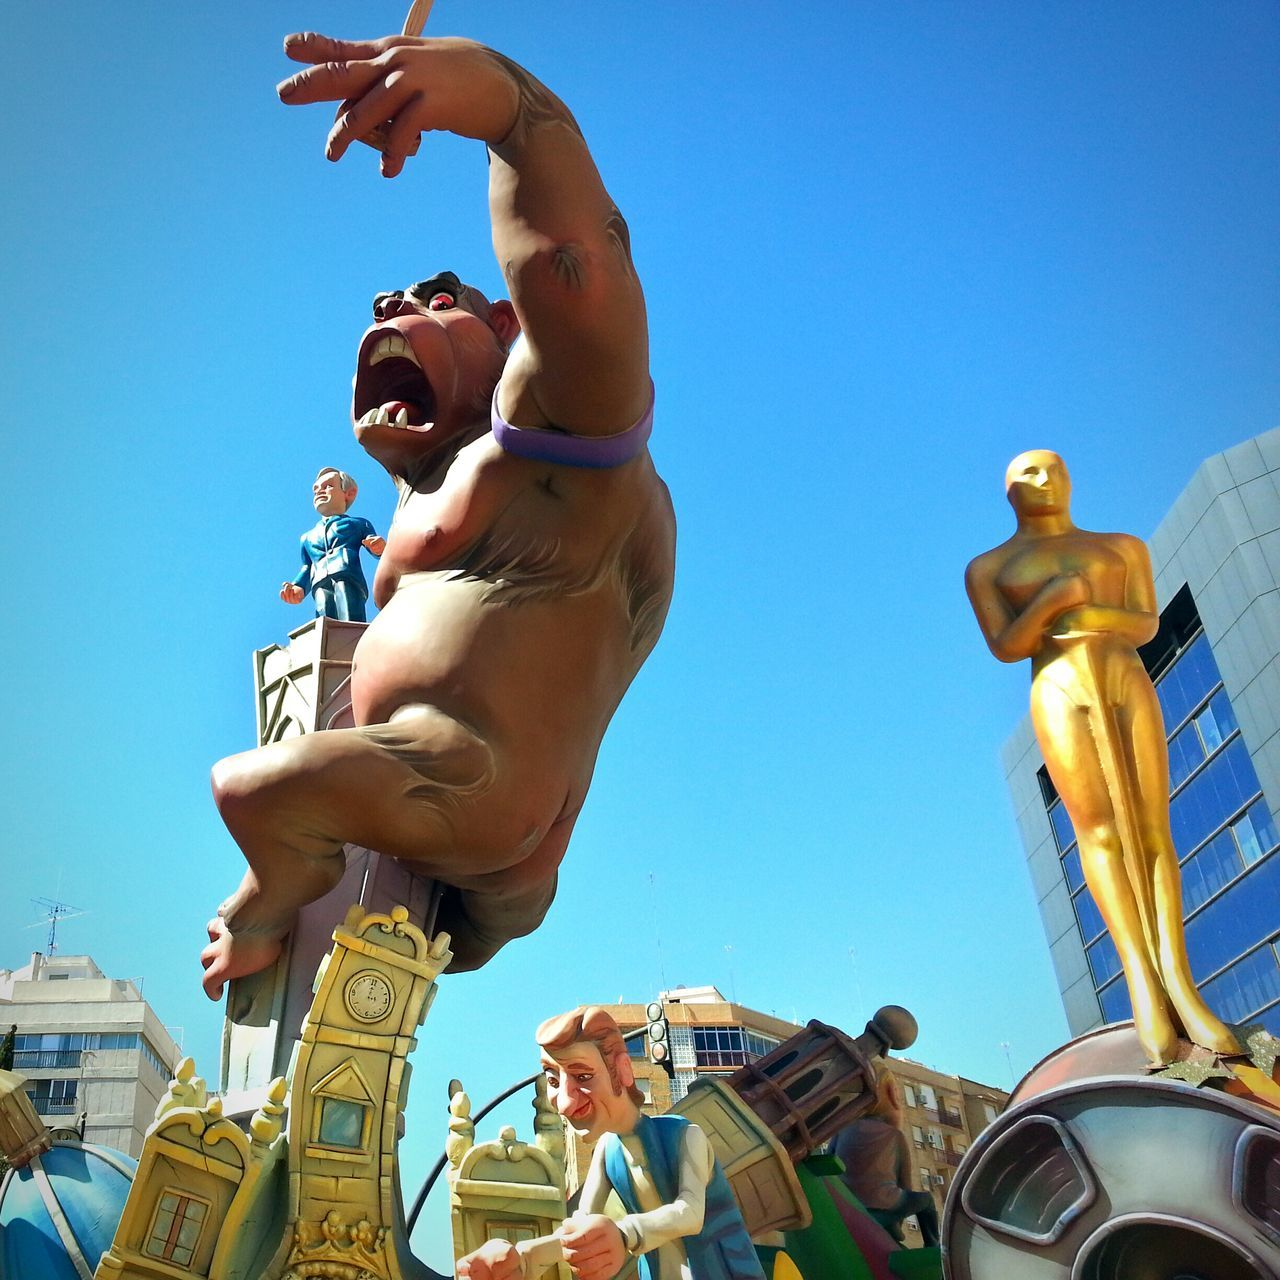 King Kong in Fallas, Valencia Low Angle View Arts Culture And Entertainment Clear Sky Sculpture Blue Day Amusement Park People Sky Adults Only Adult Outdoors Statue Togetherness Men Only Men City Young Adult King Kong Fallas 2017